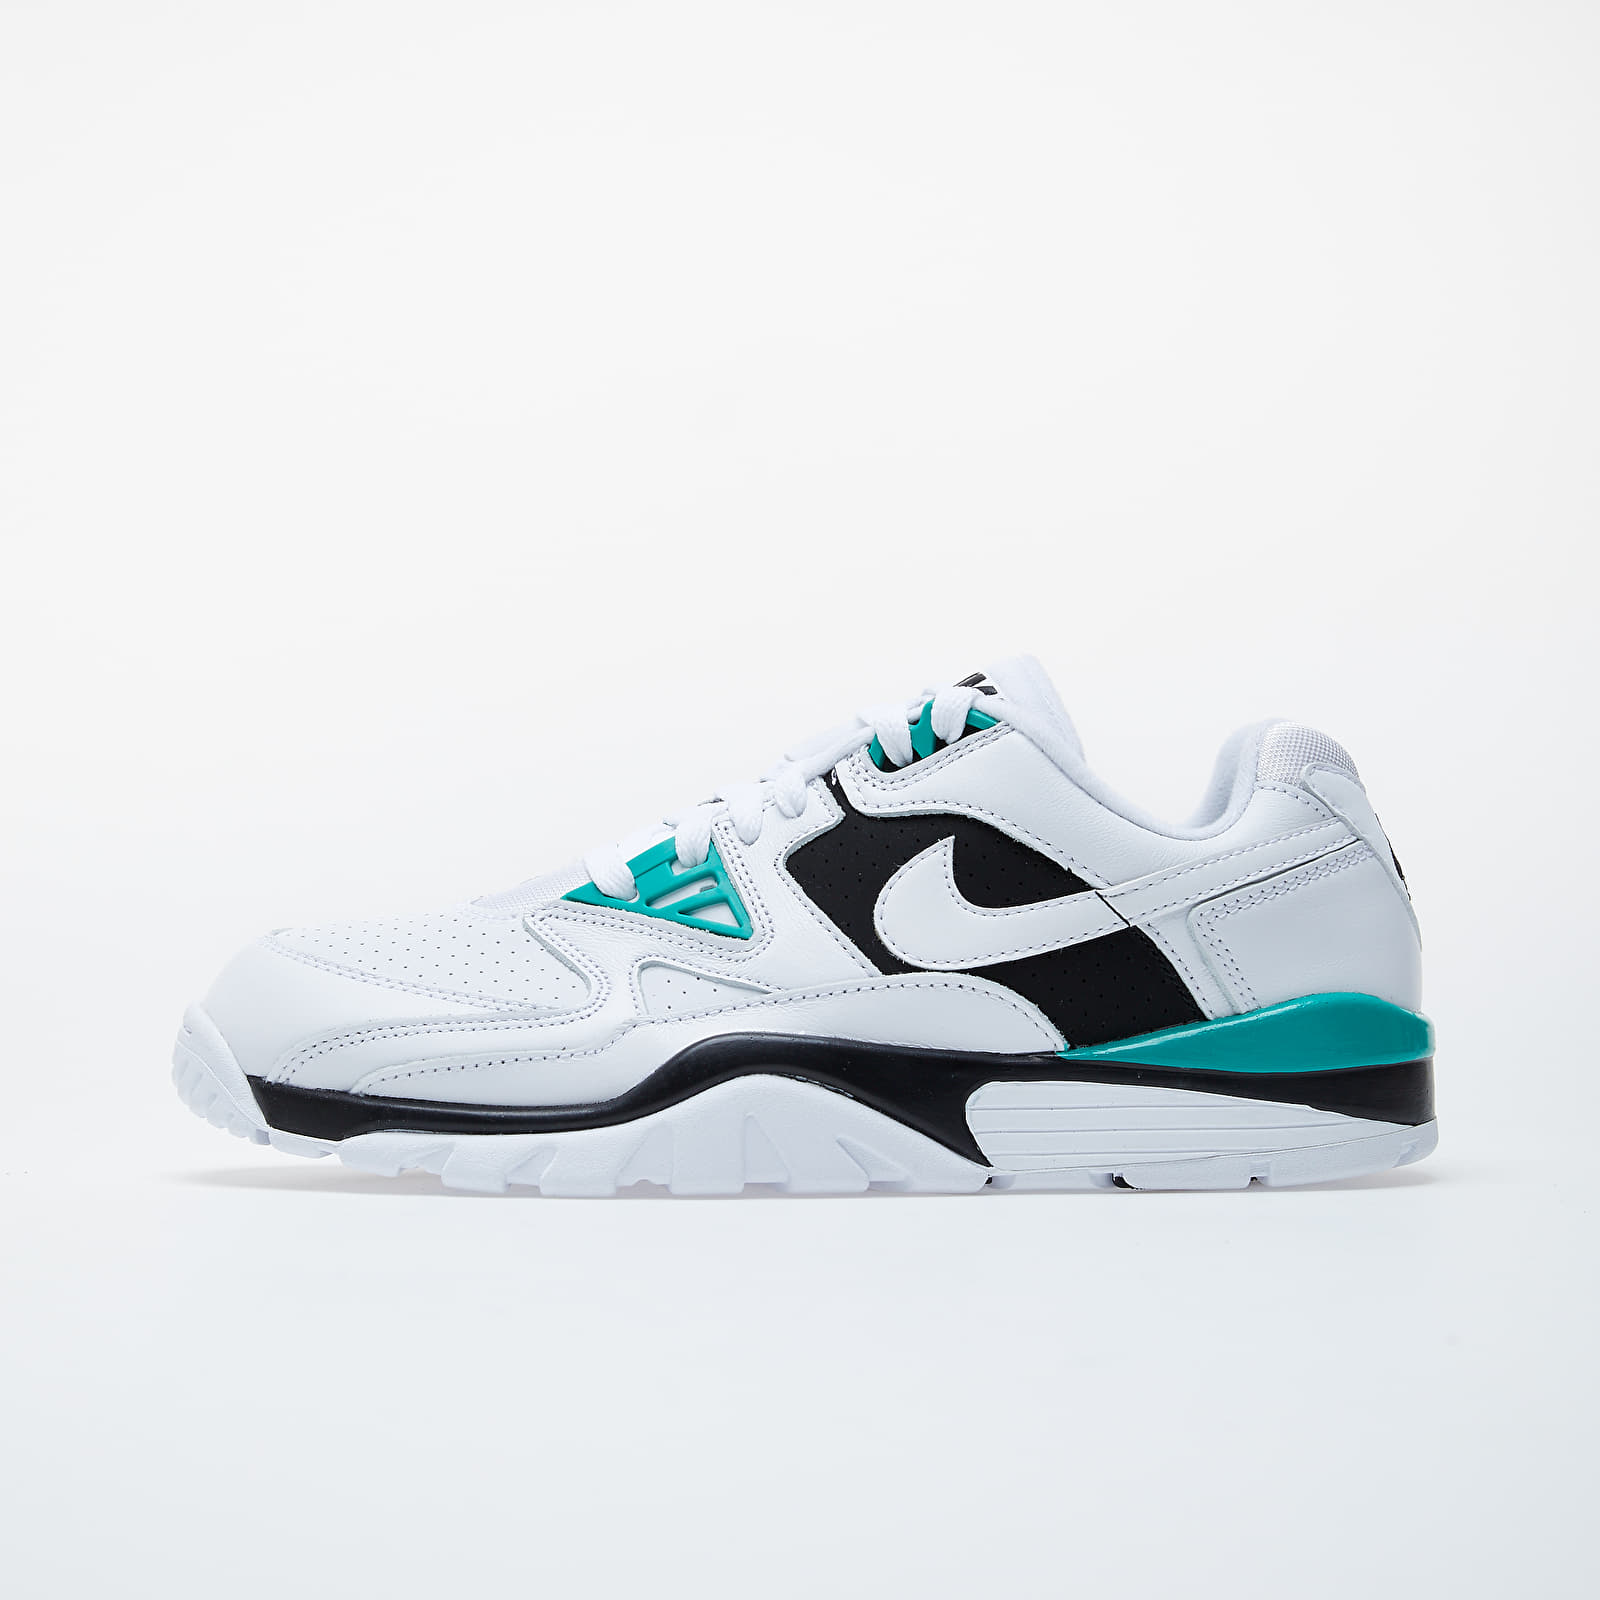 Nike Air Cross Trainer 3 Low White White Neptune Green Black | Footshop